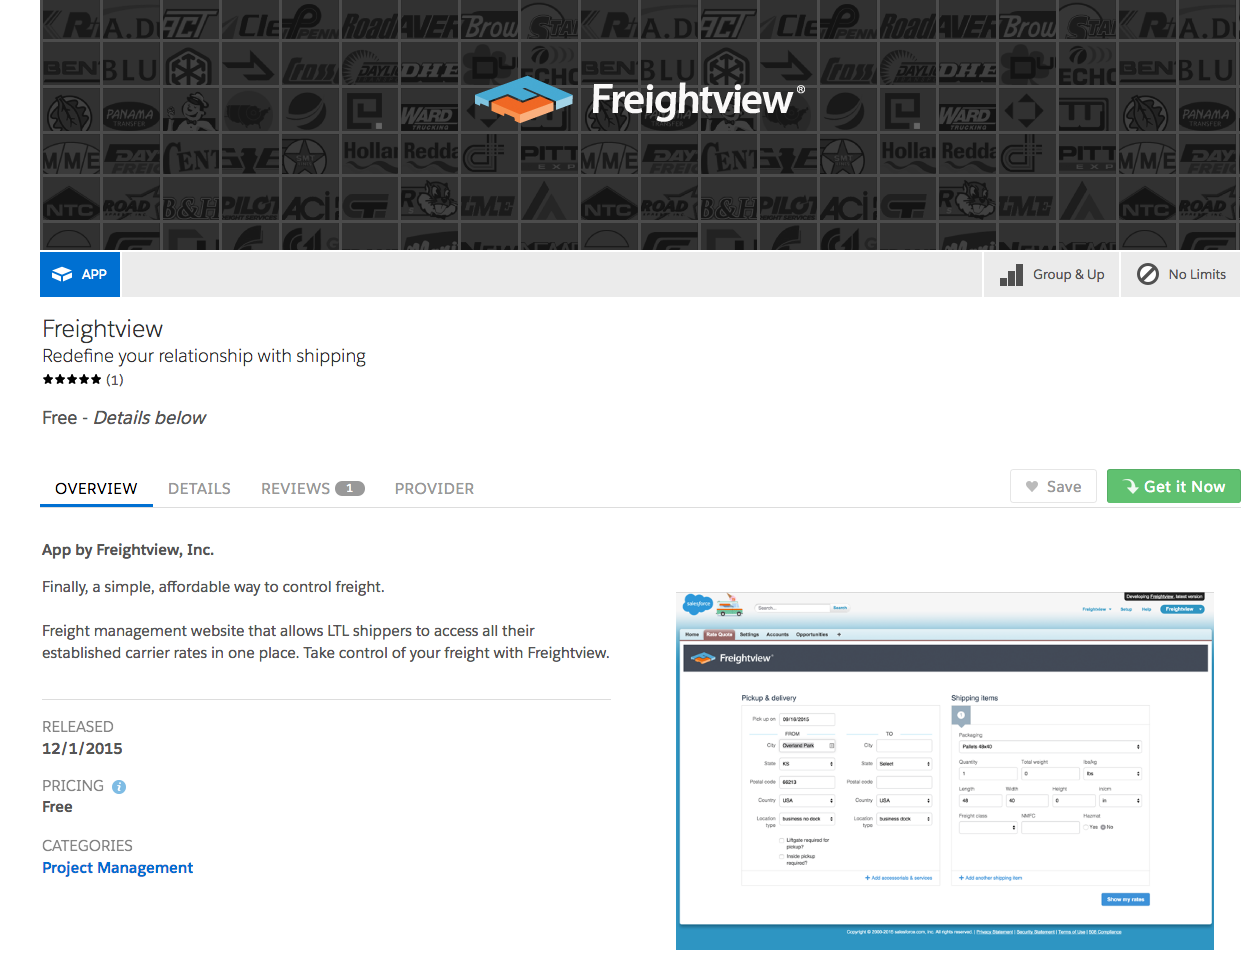 Freightview on Salesforce AppExchange Get it Now button